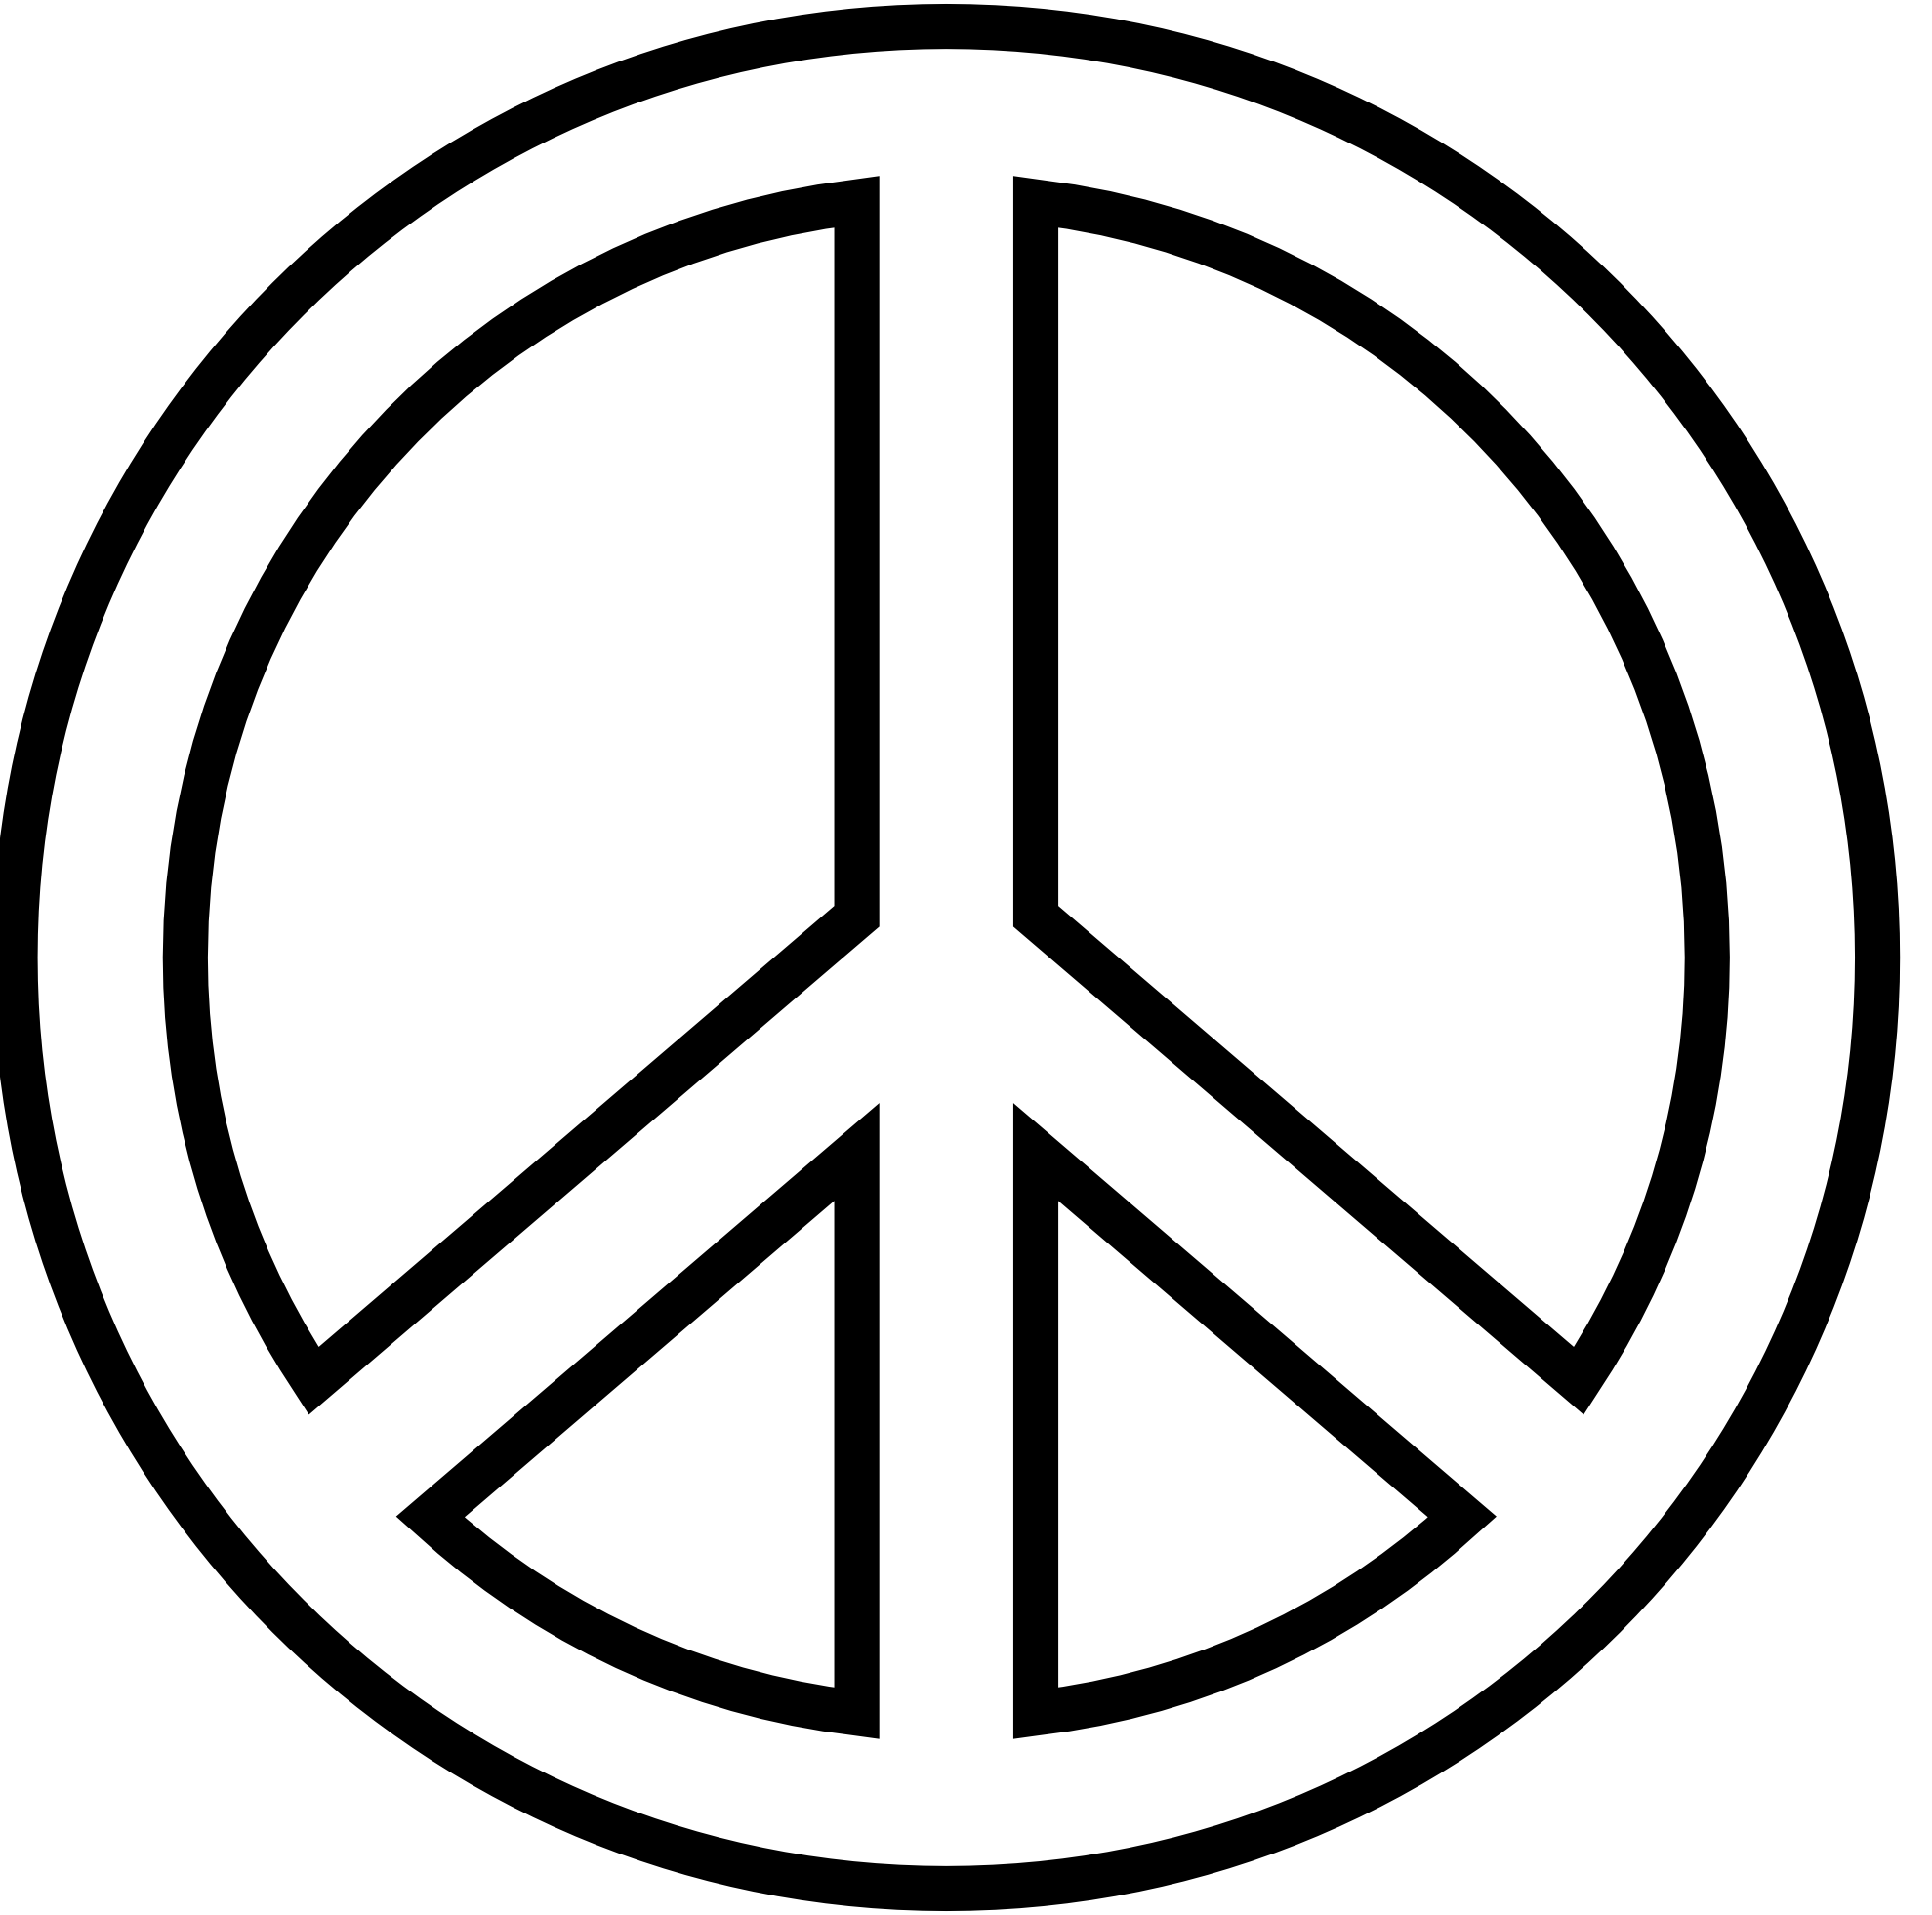 Peace Sign Clipart Black And White Peace Sign 18 Black White